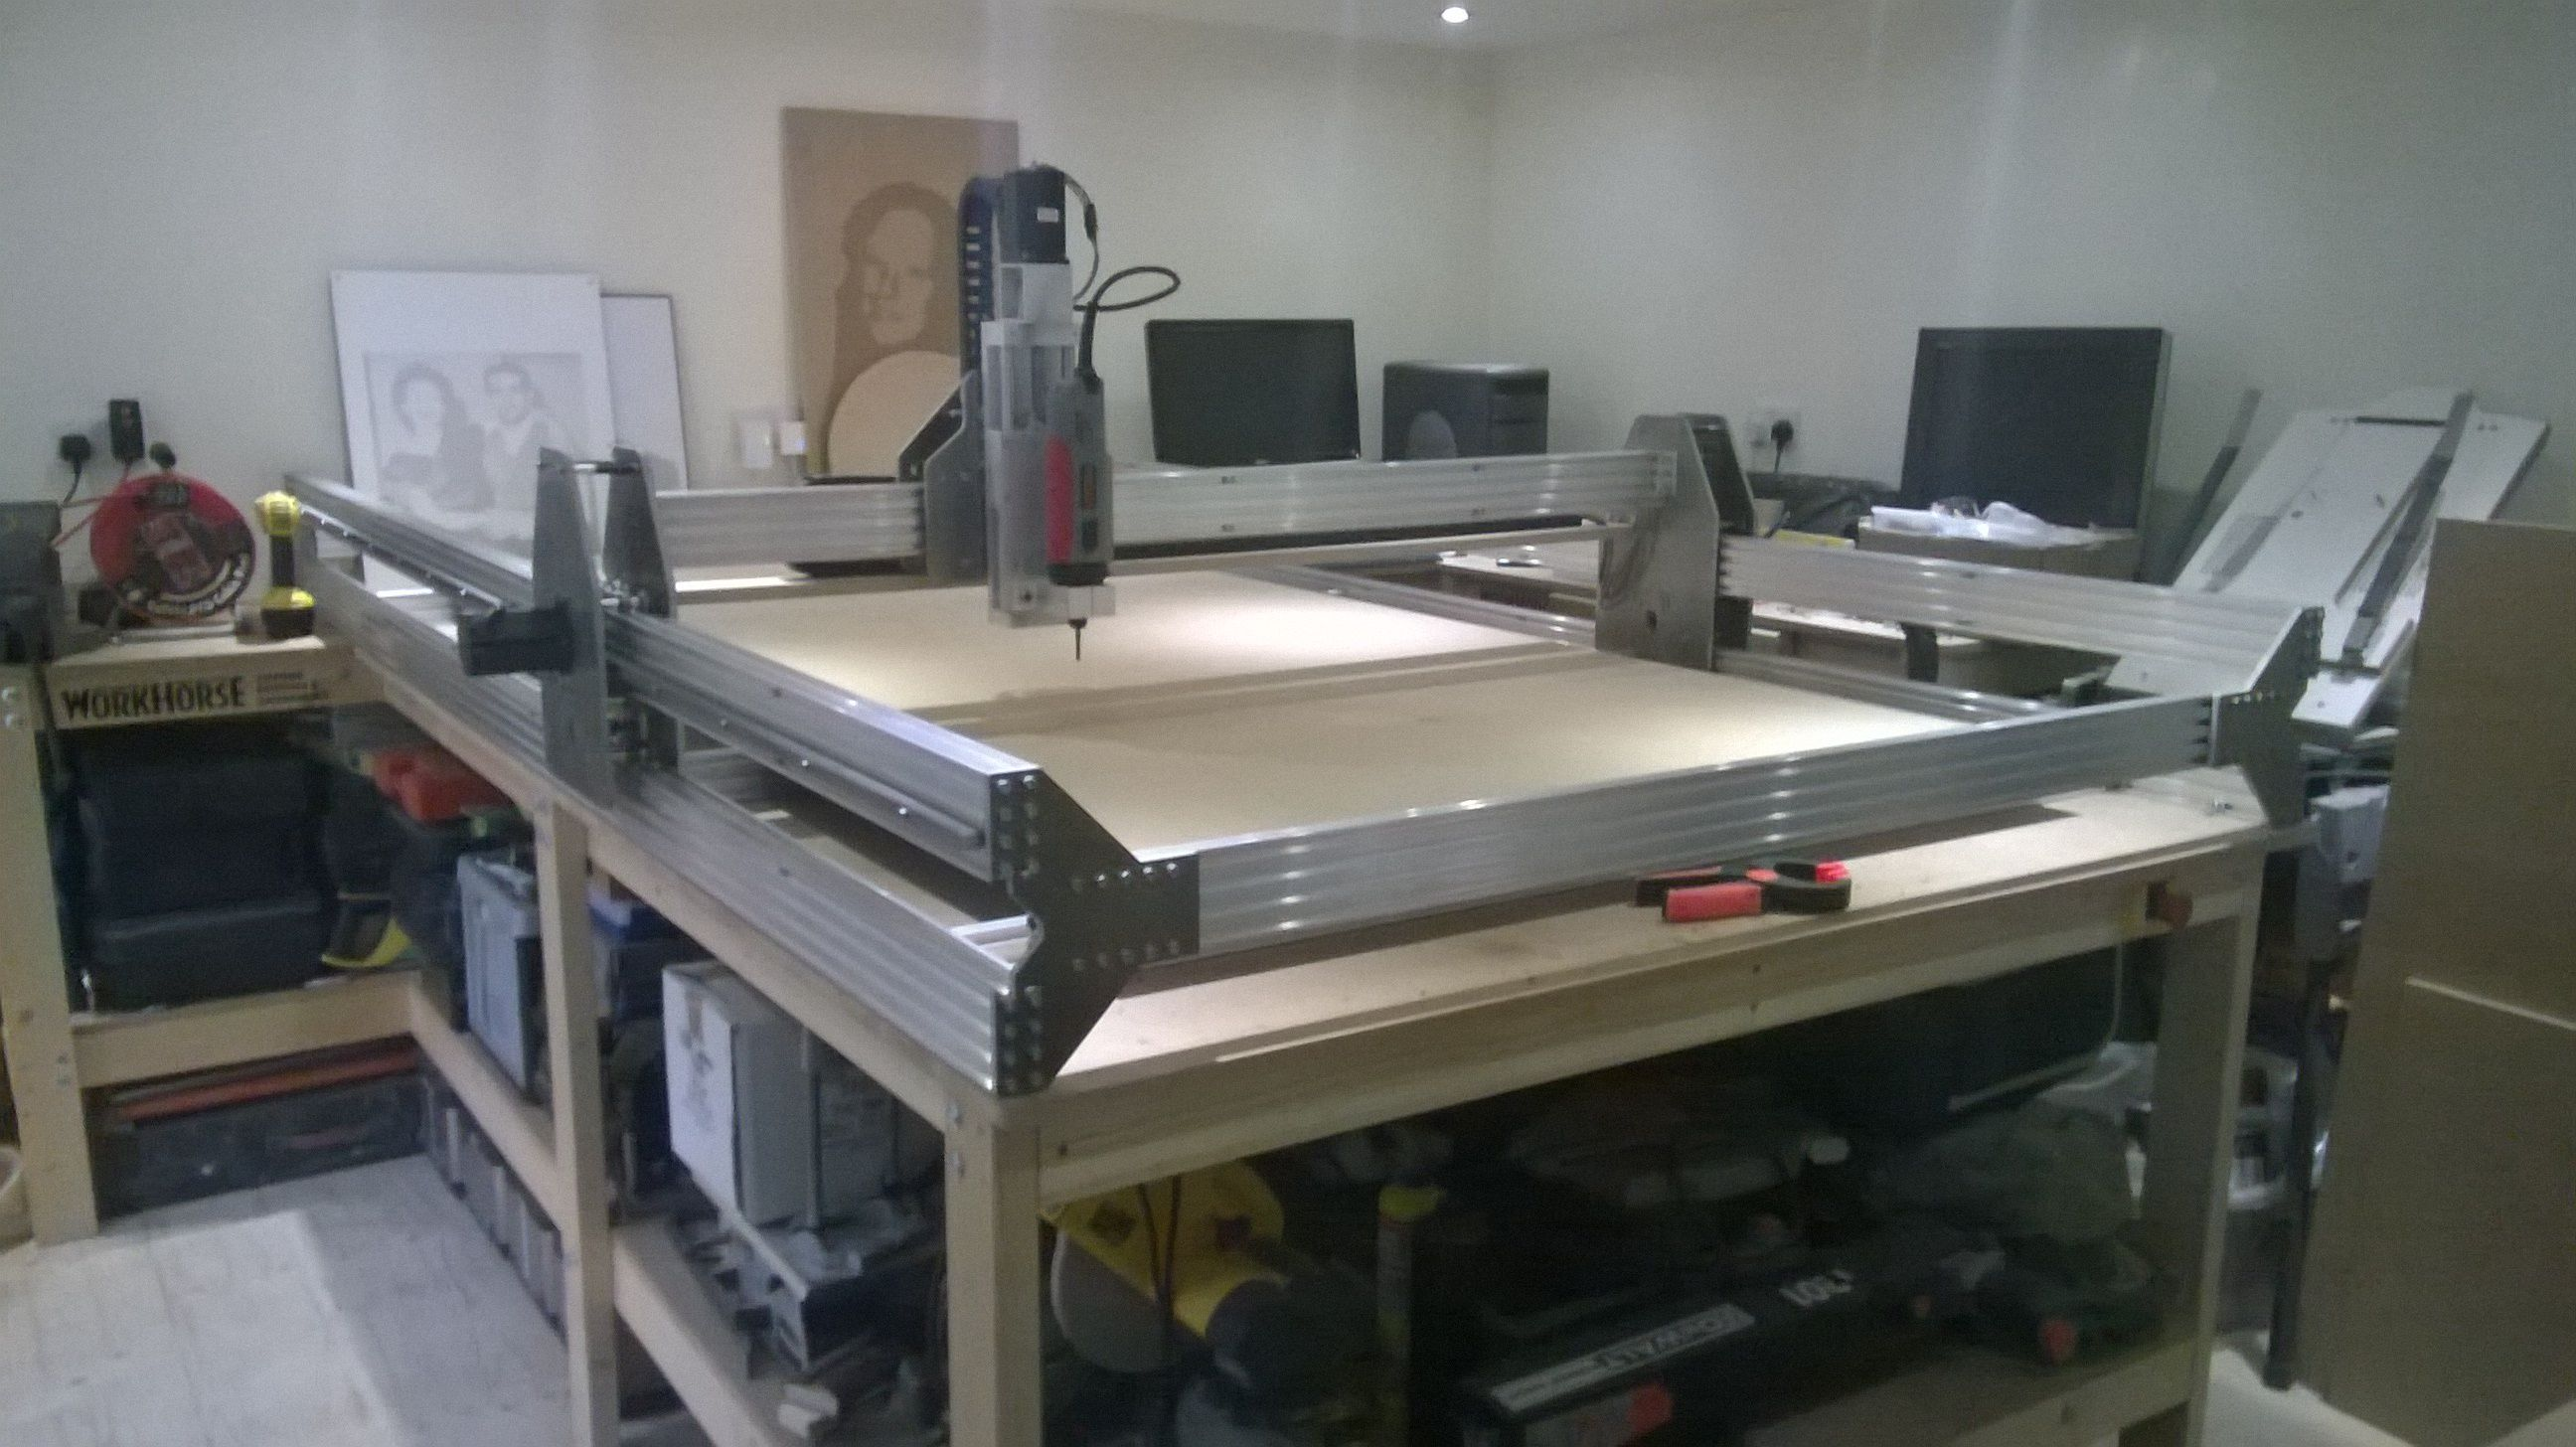 My home made cnc router, it takes a full 8' x 4' sheet of